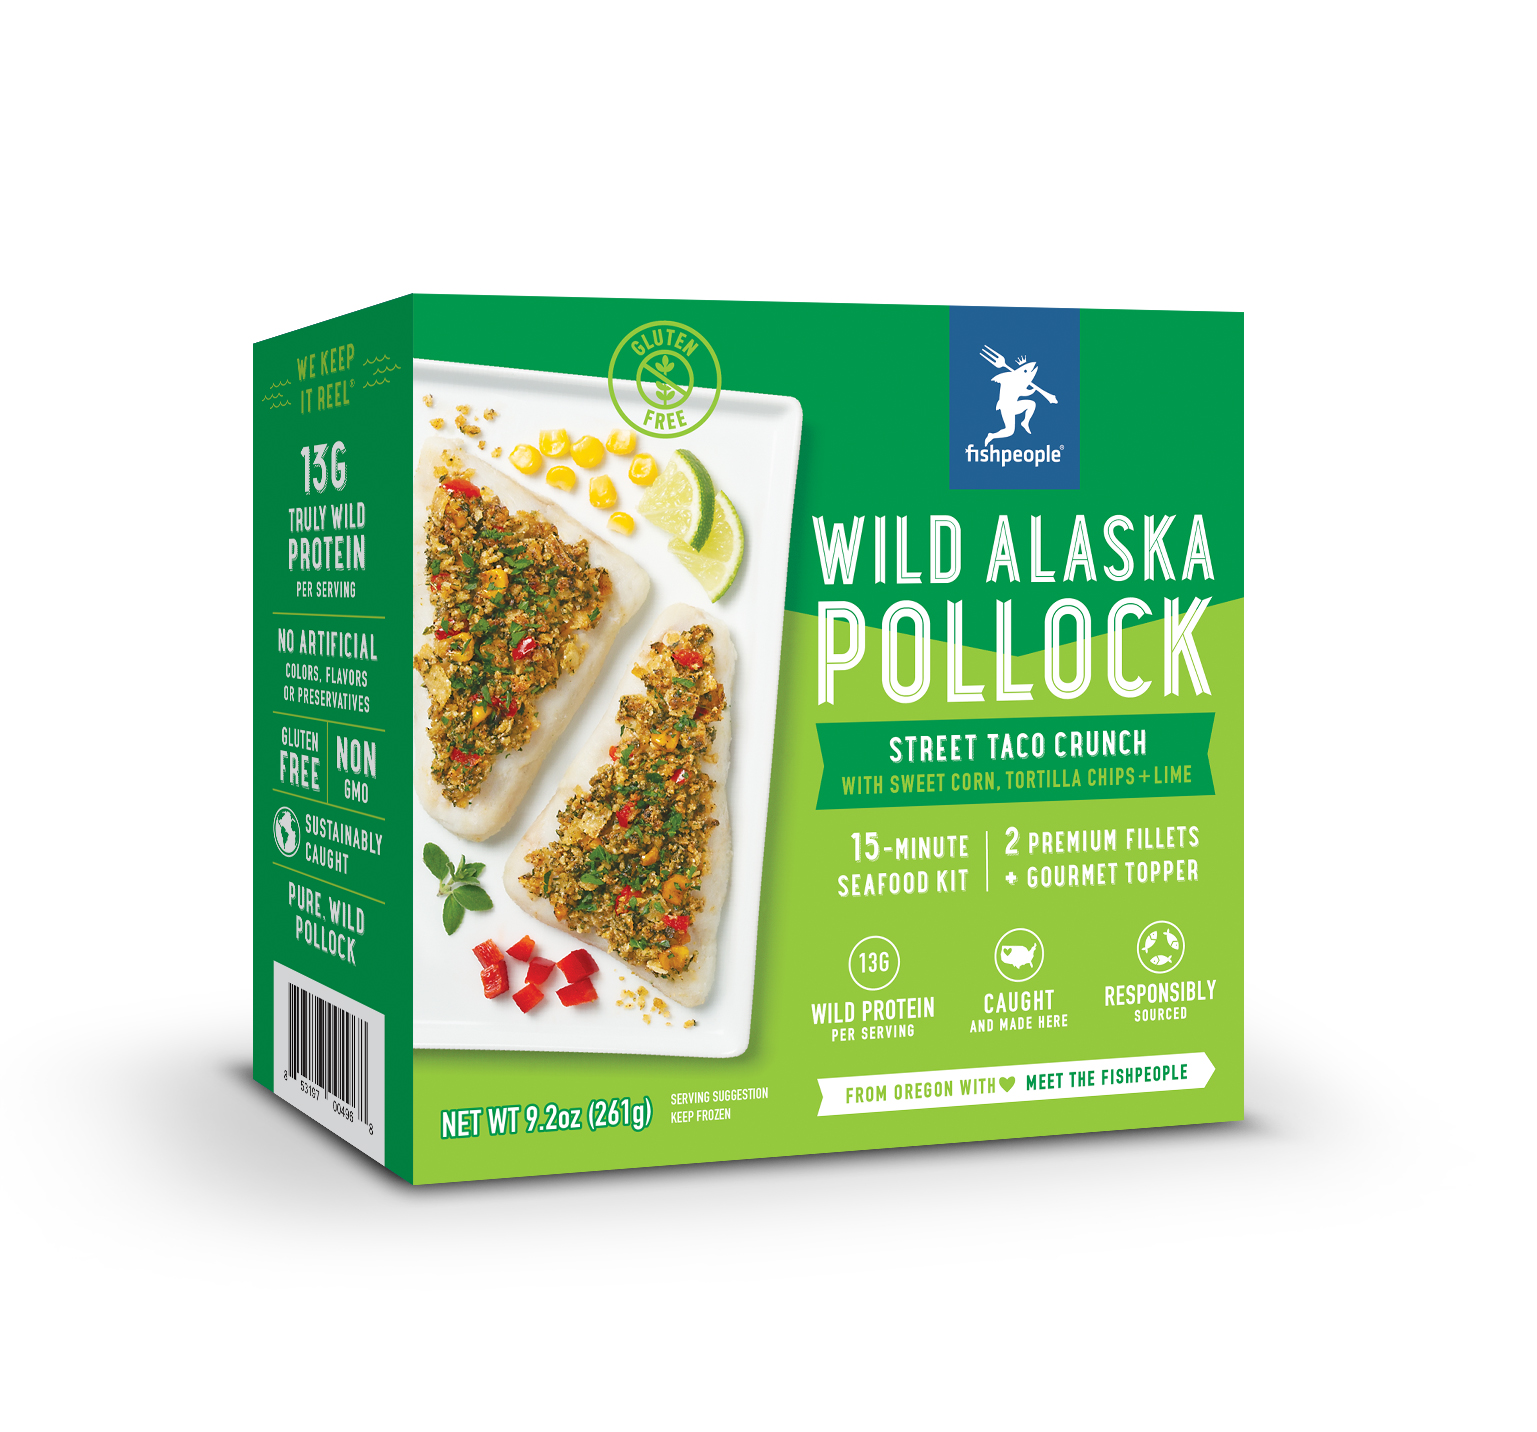 GAPP Partners With Fishpeople to Promote Meal Kits Featuring Wild Alaska Pollock